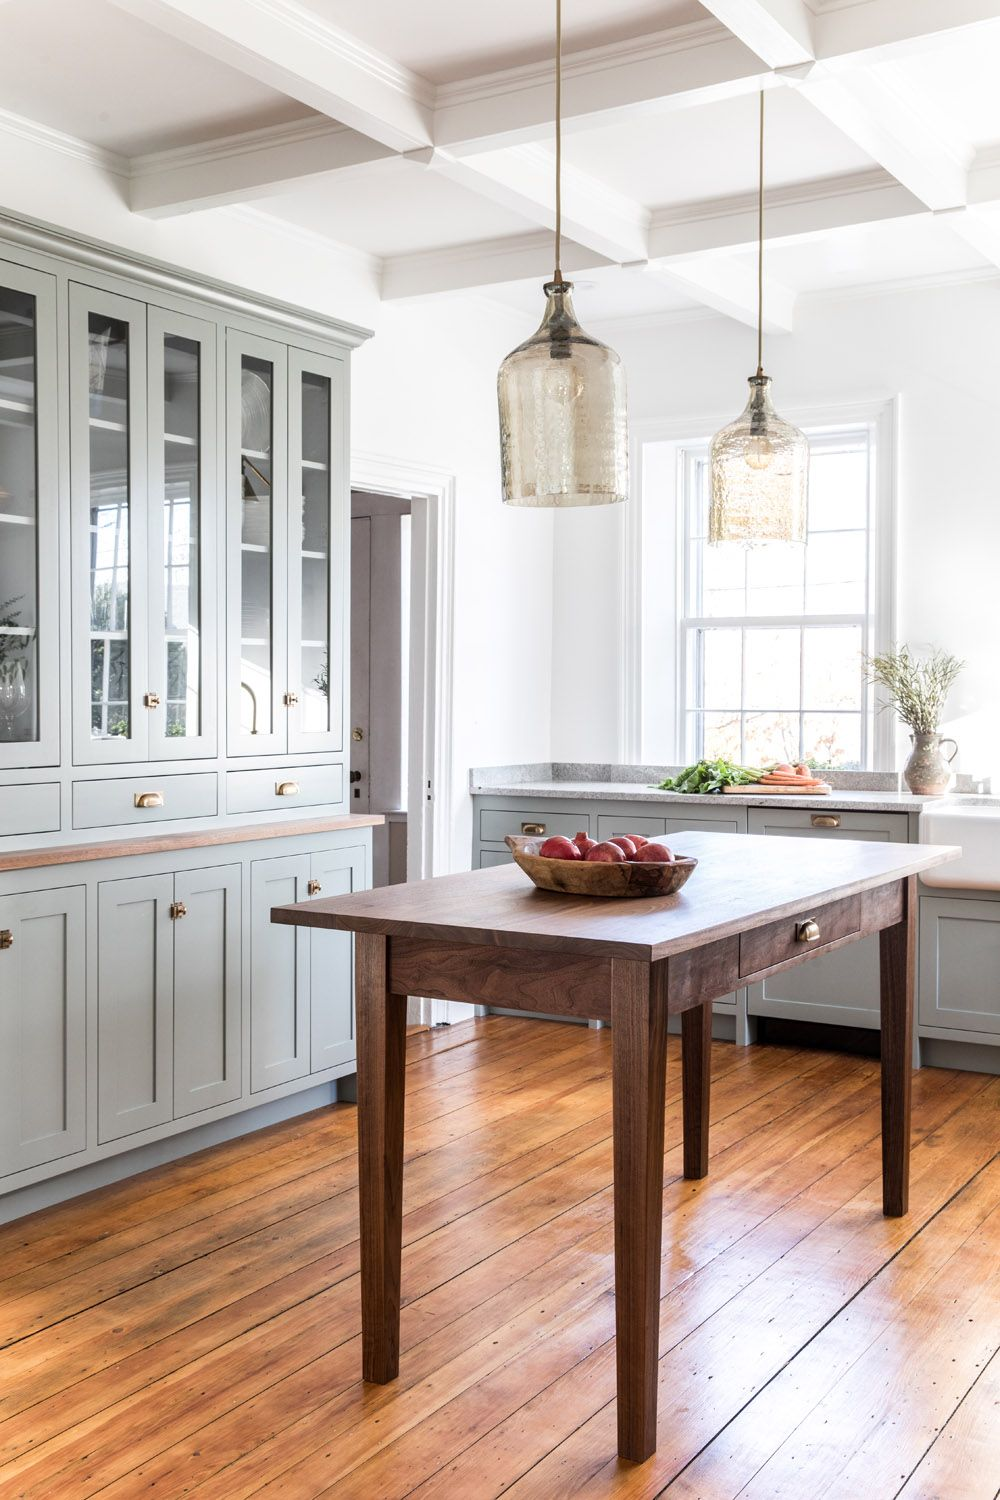 A Shaker Style Kitchen For A 30 Something Couple In Maine Rue Shaker Style Kitchens Kitchen Styling Shaker Style